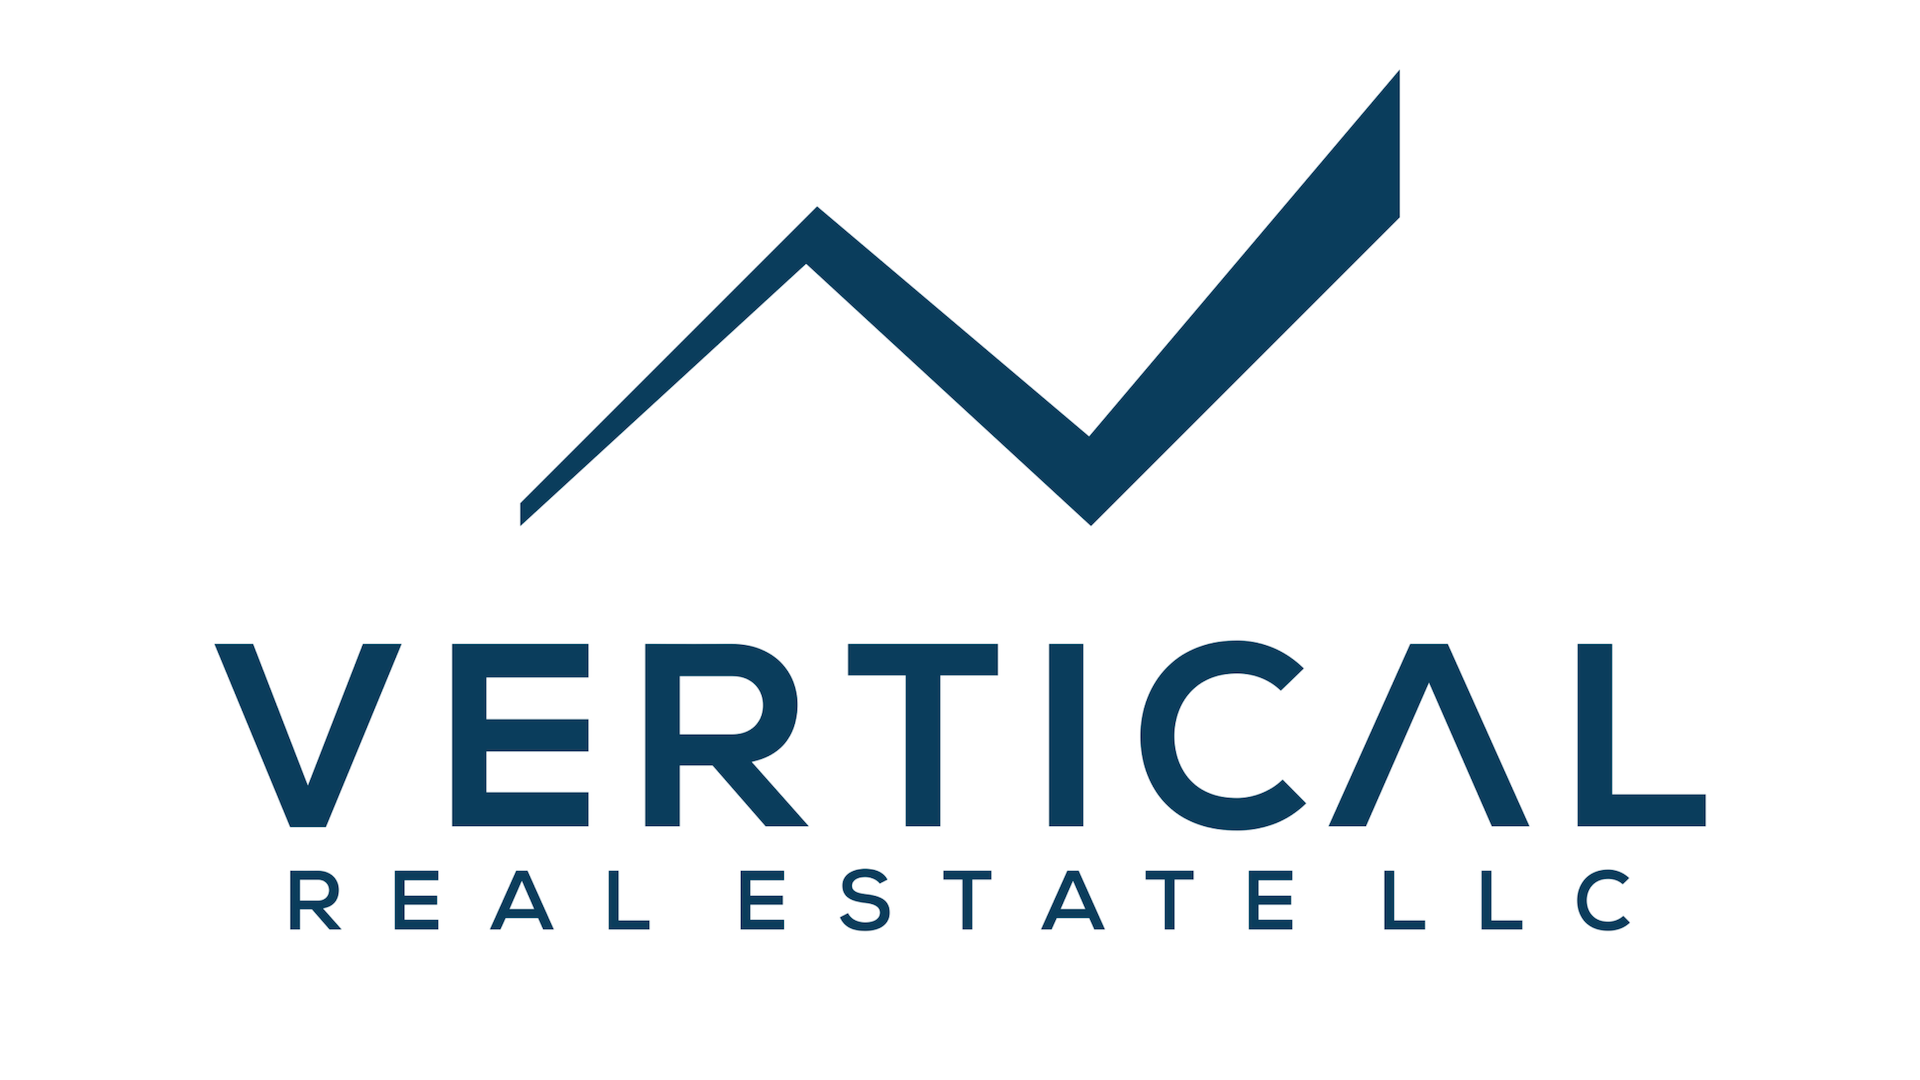 Vertical Real Estate LLC  logo